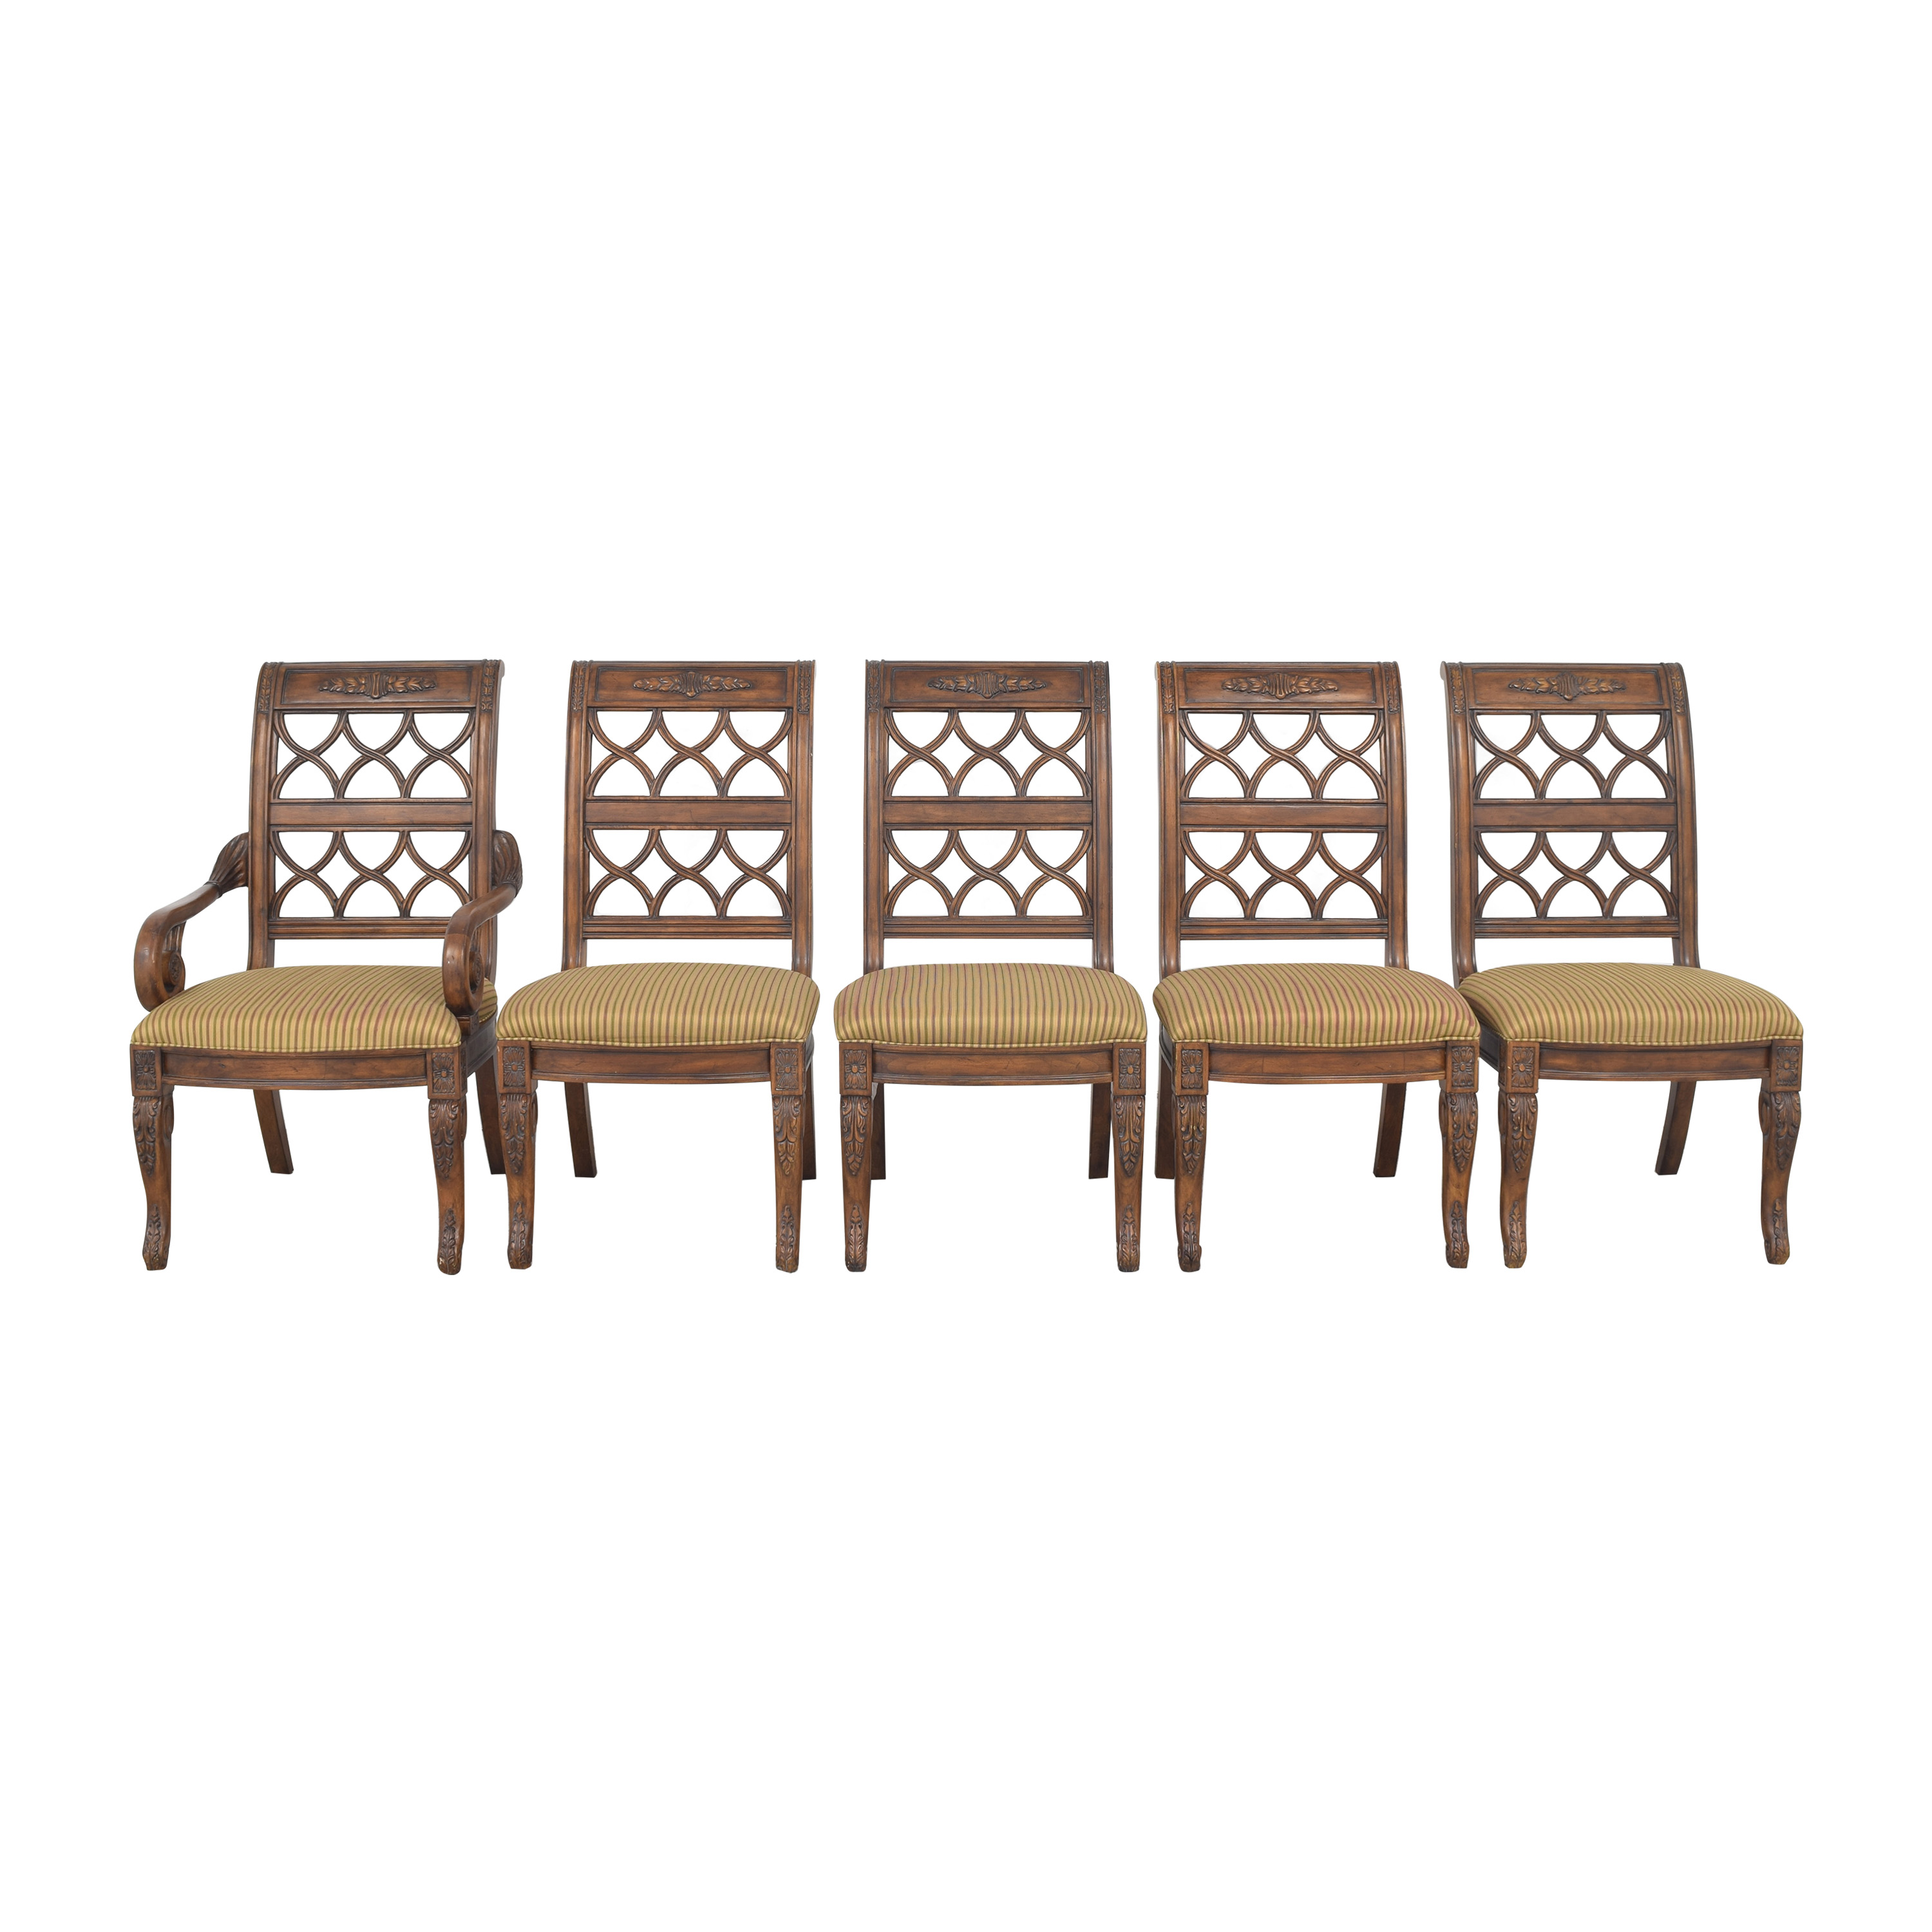 Drexel Heritage Upholstered Dining Chairs Drexel Heritage